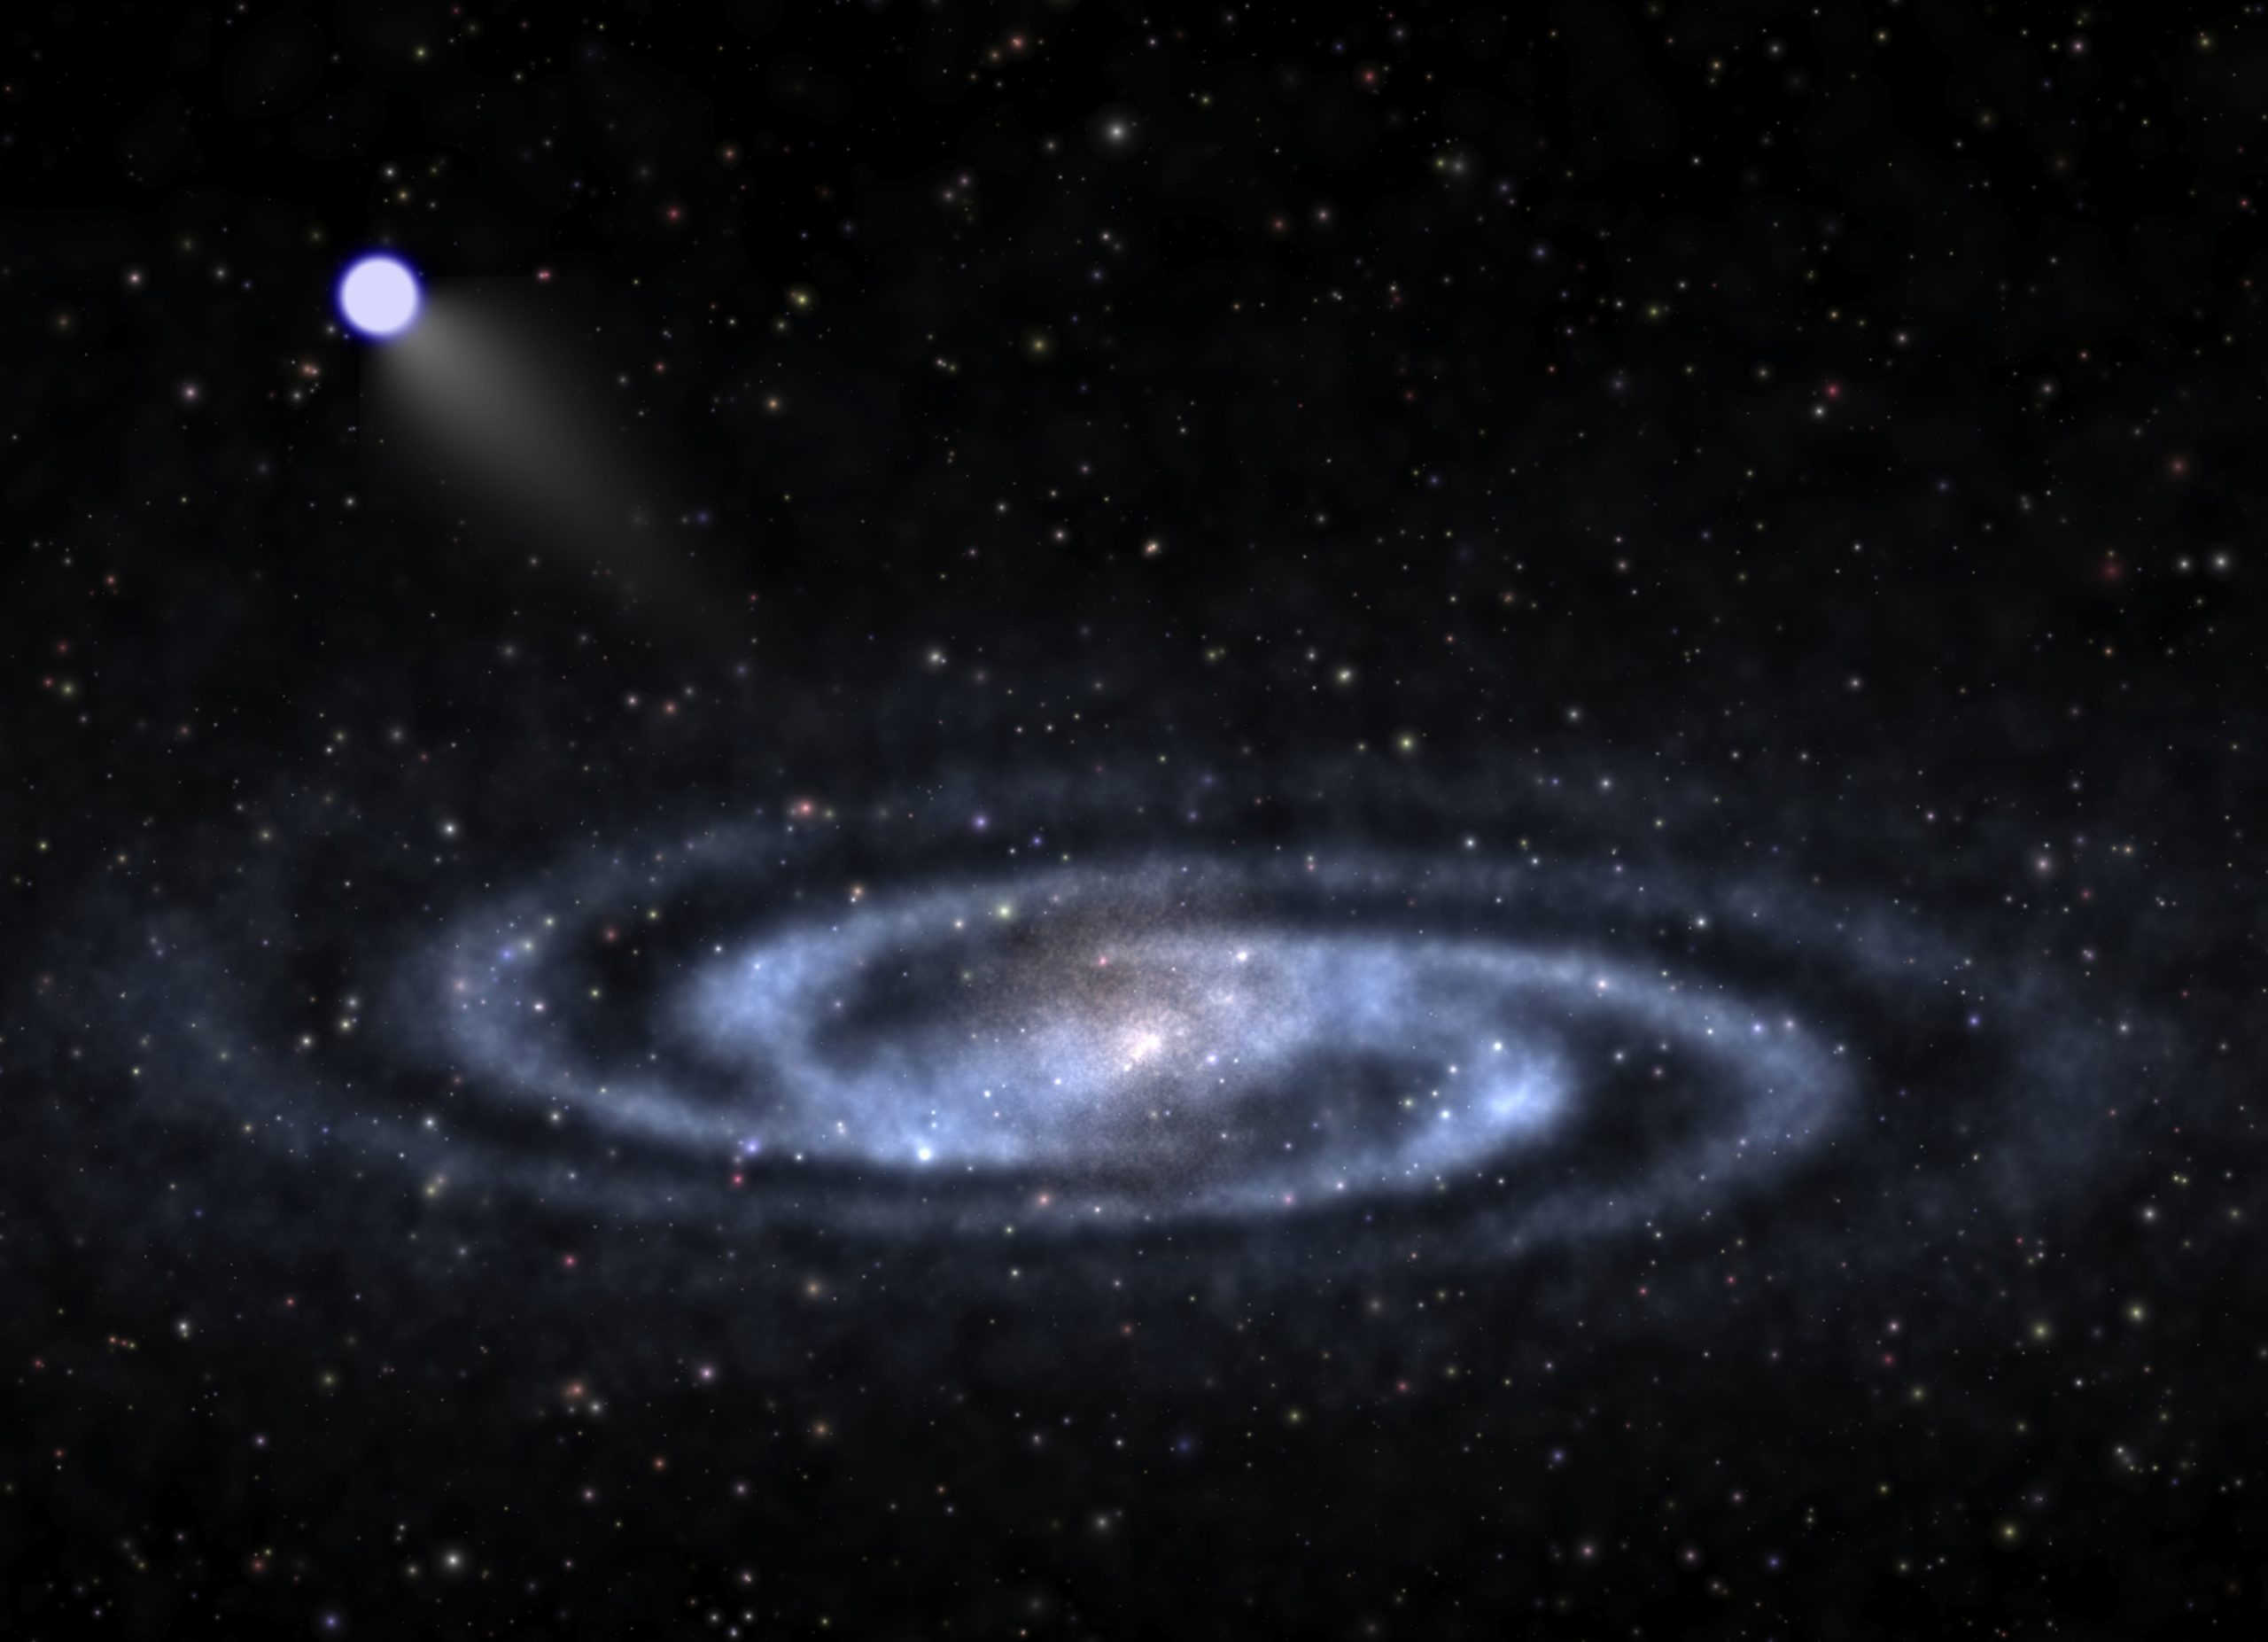 """An astrophysicist-artist's conception of a hypervelocity star speeding away from the visible part of a spiral galaxy like our Milky Way and into the invisible halo of mysterious """"dark matter"""" that surrounds the galaxy's visible portions. University of Utah researcher Zheng Zheng and colleagues in the U.S. and China discovered the closest bright hypervelocity star yet found."""